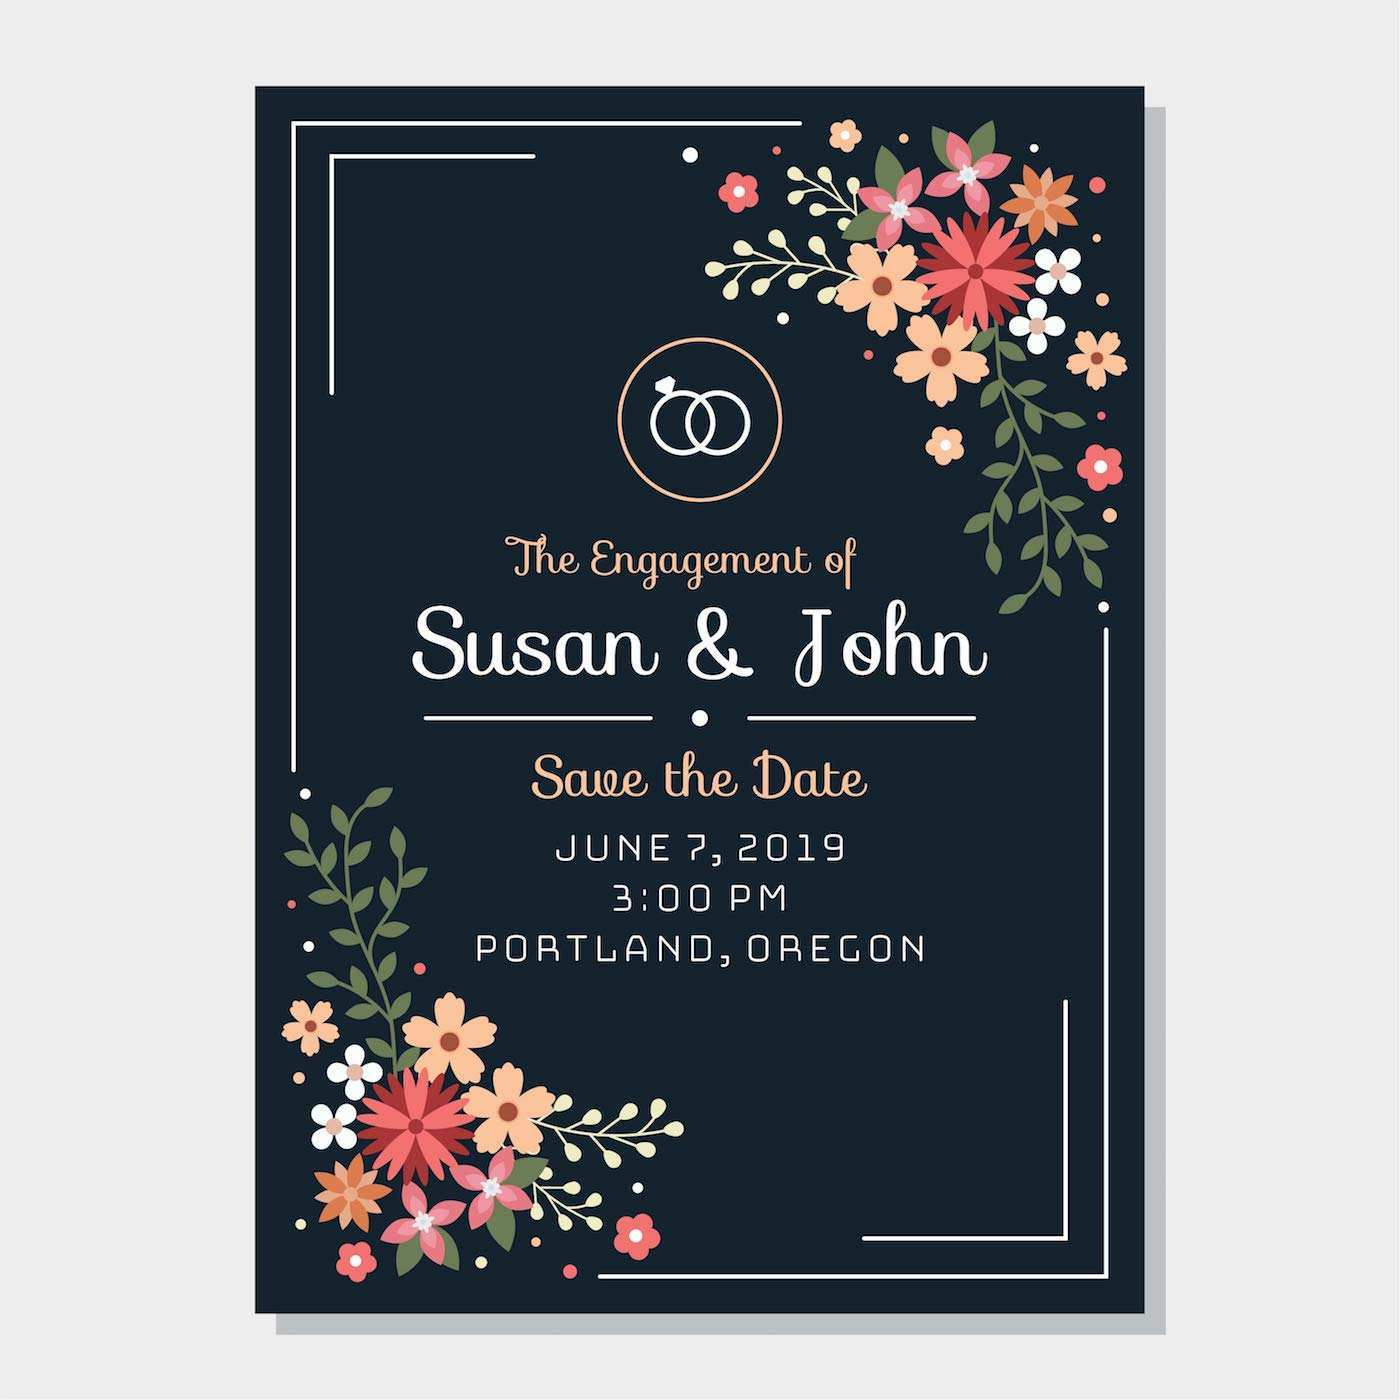 29 Best Invitation Card Format For Engagement Maker with Invitation Card  Format For Engagement - Cards Design Templates